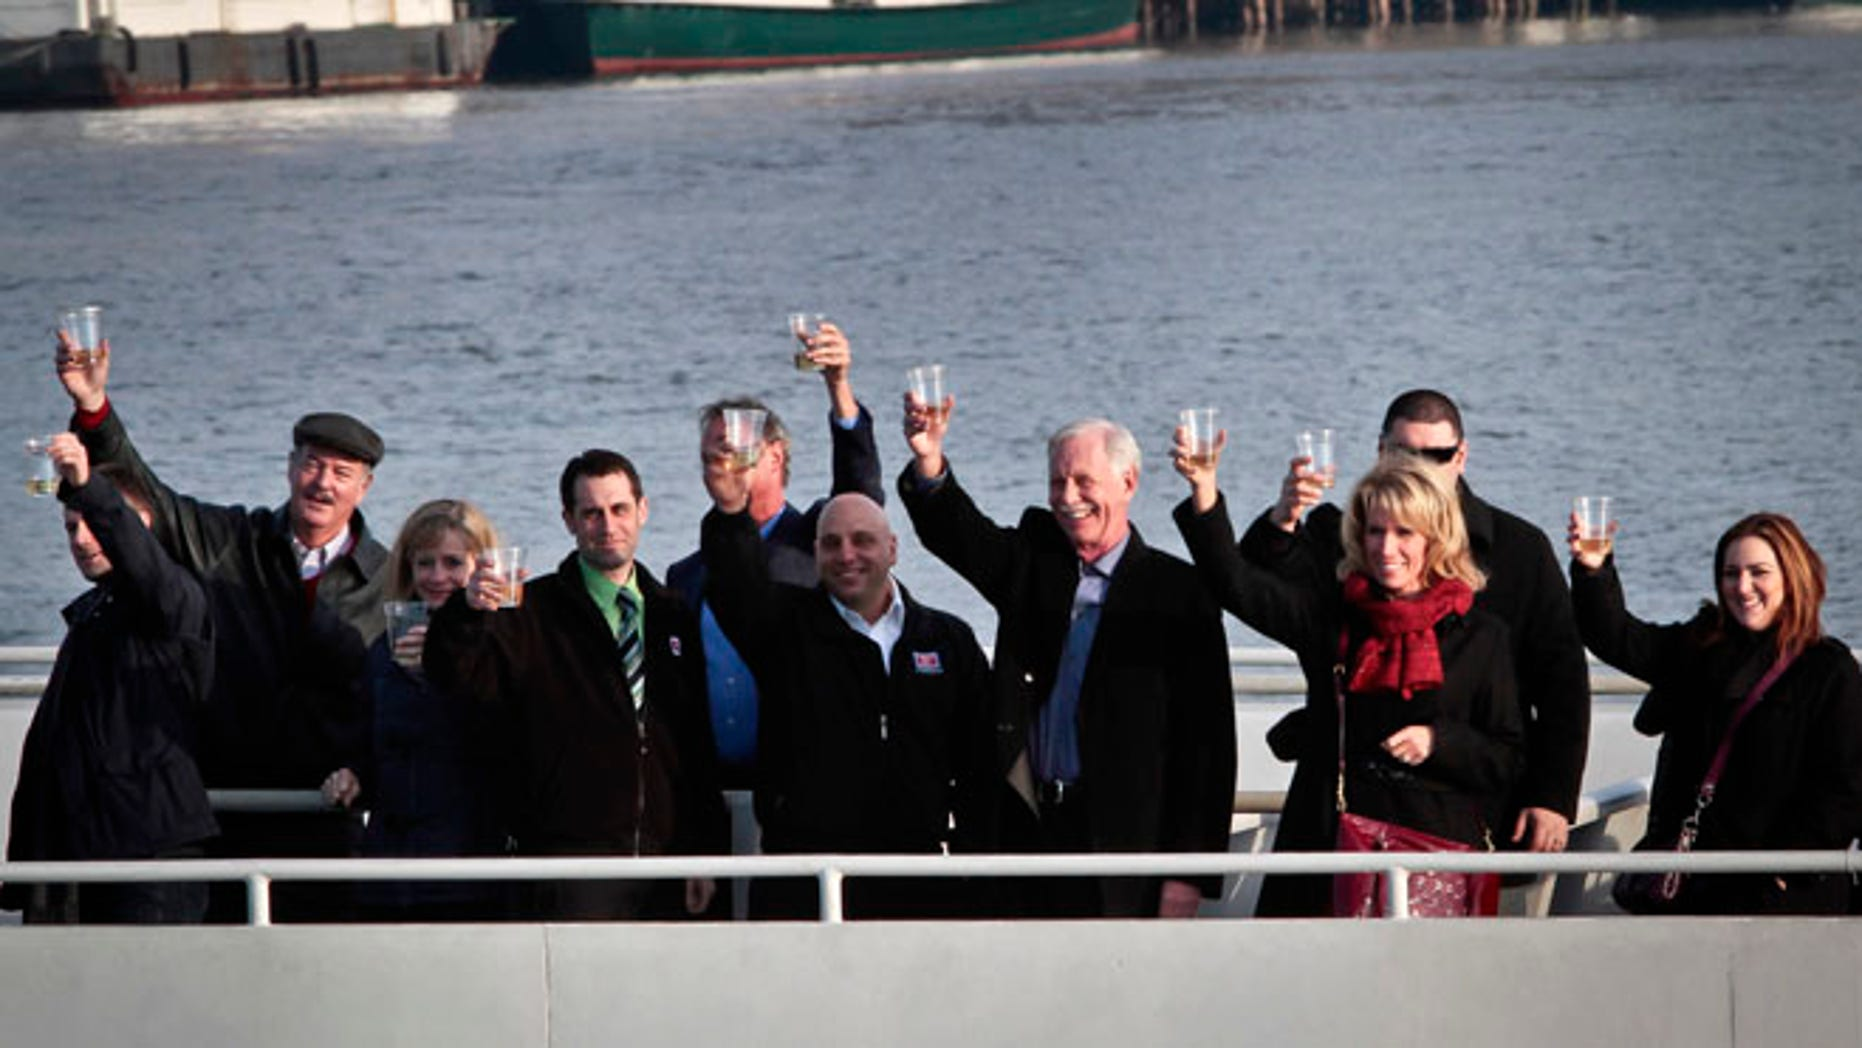 "Jan. 15, 2014: Captain Chesley ""Sully"" Sullenberger III, fourth from right, pilot who safely glided U.S. Airways Flight 1549 with155 passengers and crew to a water landing 5 years ago, join survivors and rescuers in a toast marking the anniversary of the event known as the ""miracle on the Hudson,"" in New York."